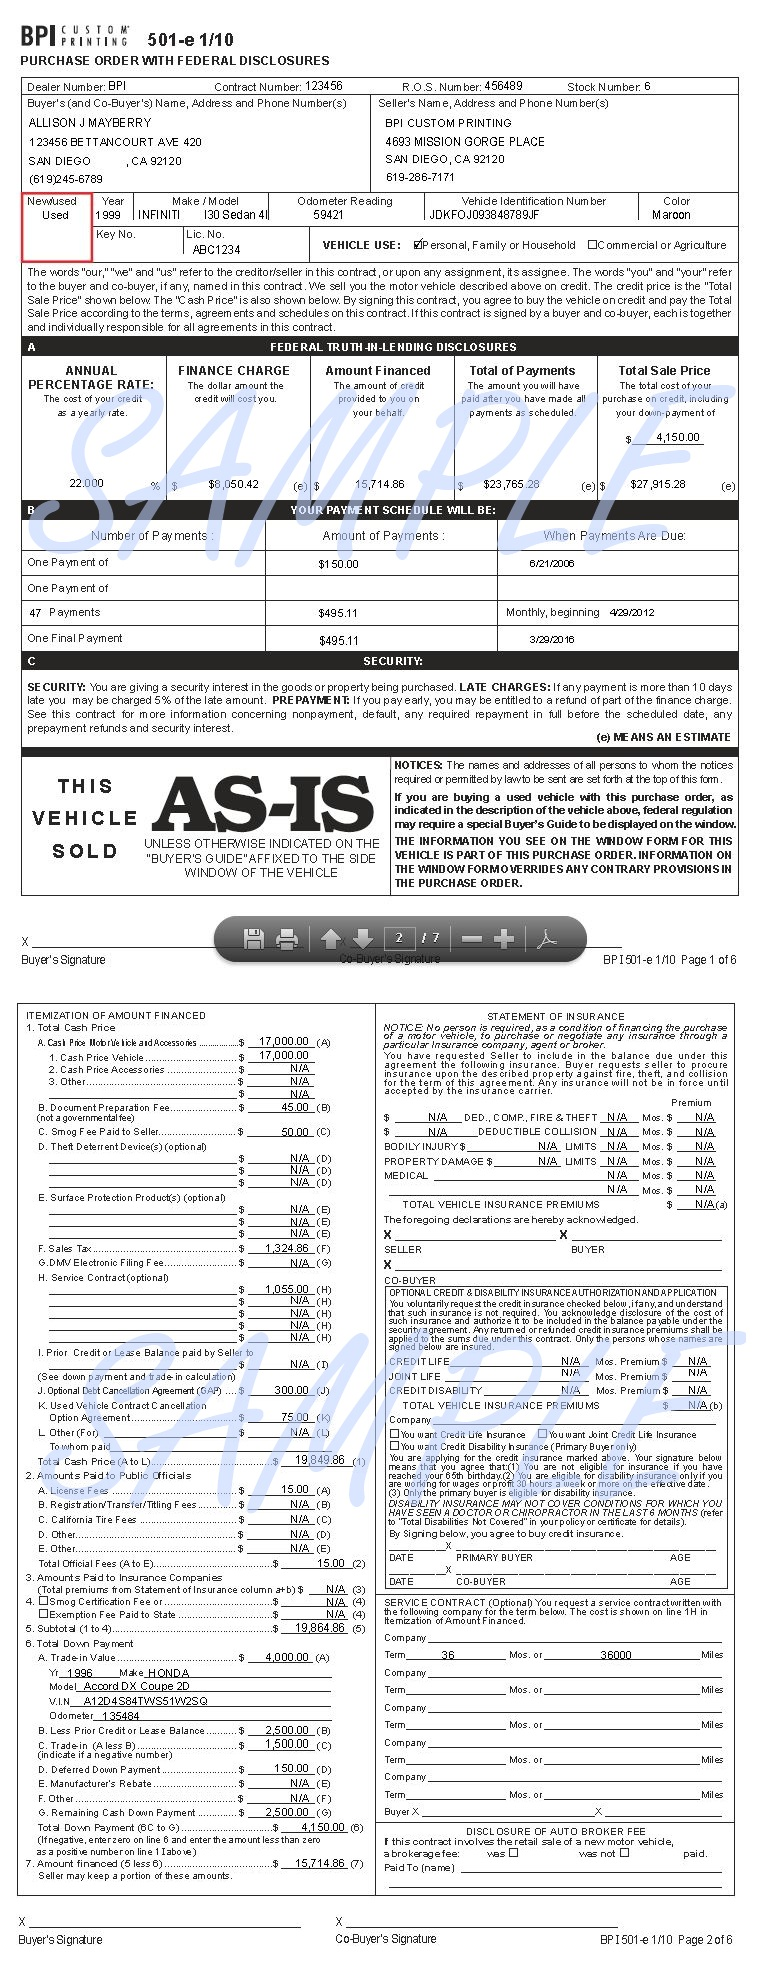 View, Purchase Order With Federal Disclosures